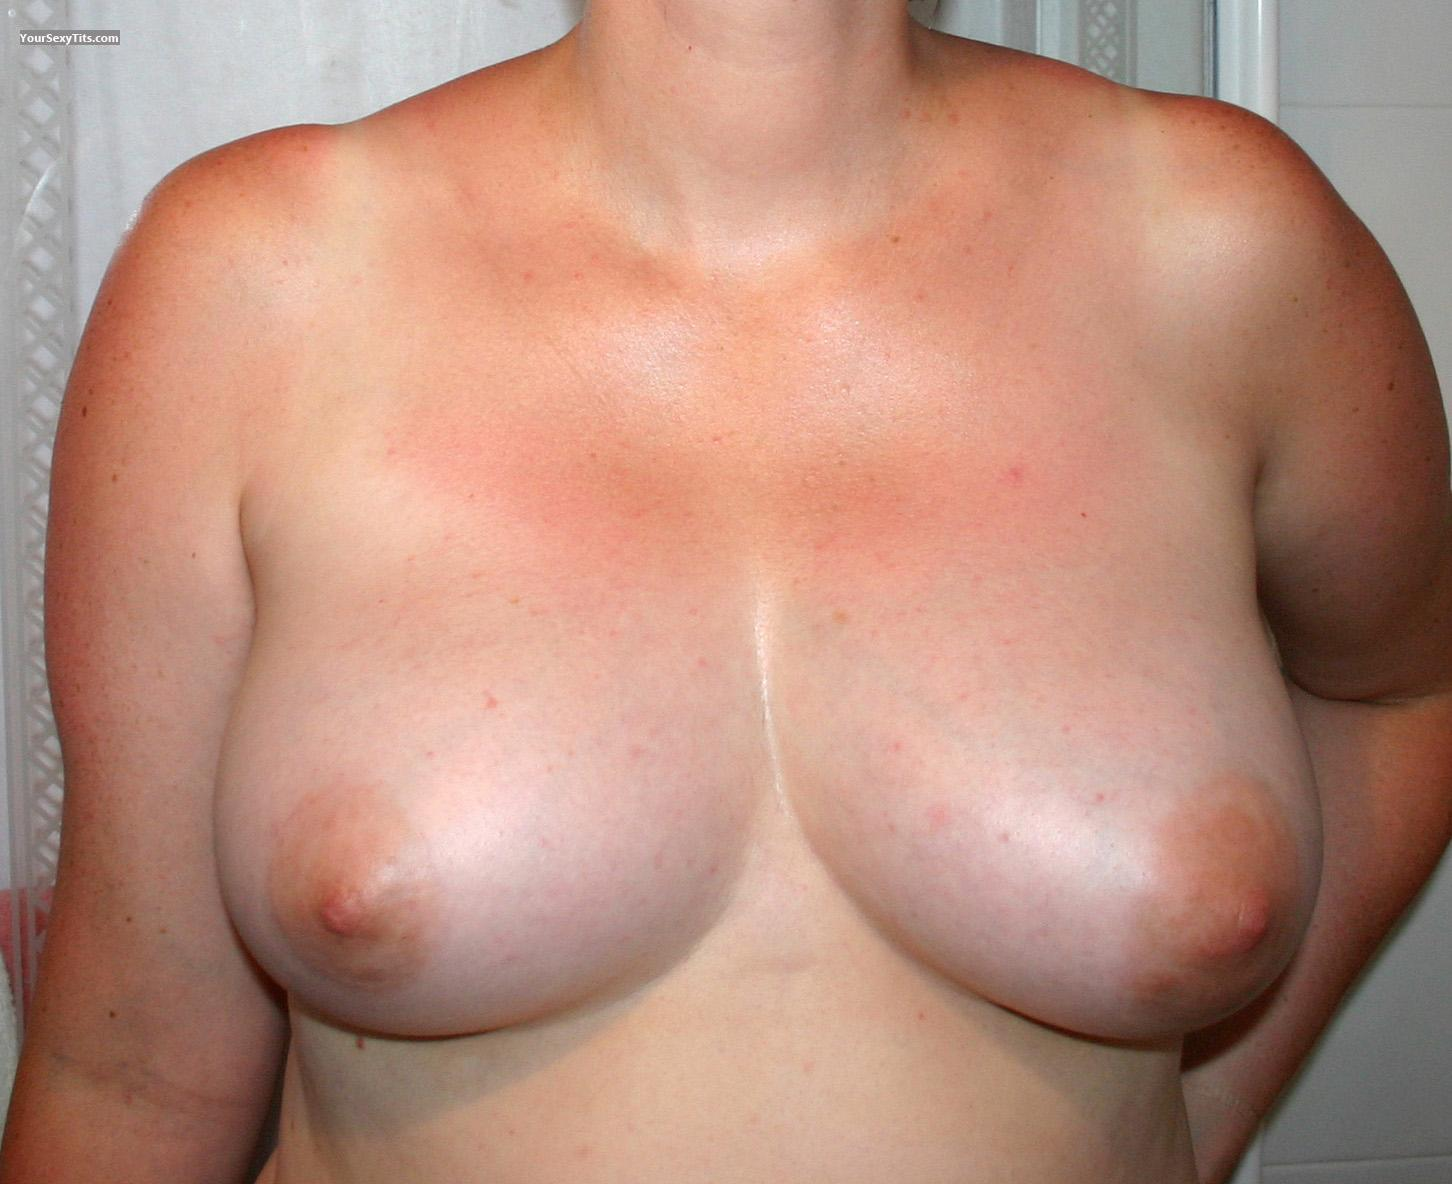 Tit Flash: Big Tits - Amazoneskimo from United Kingdom